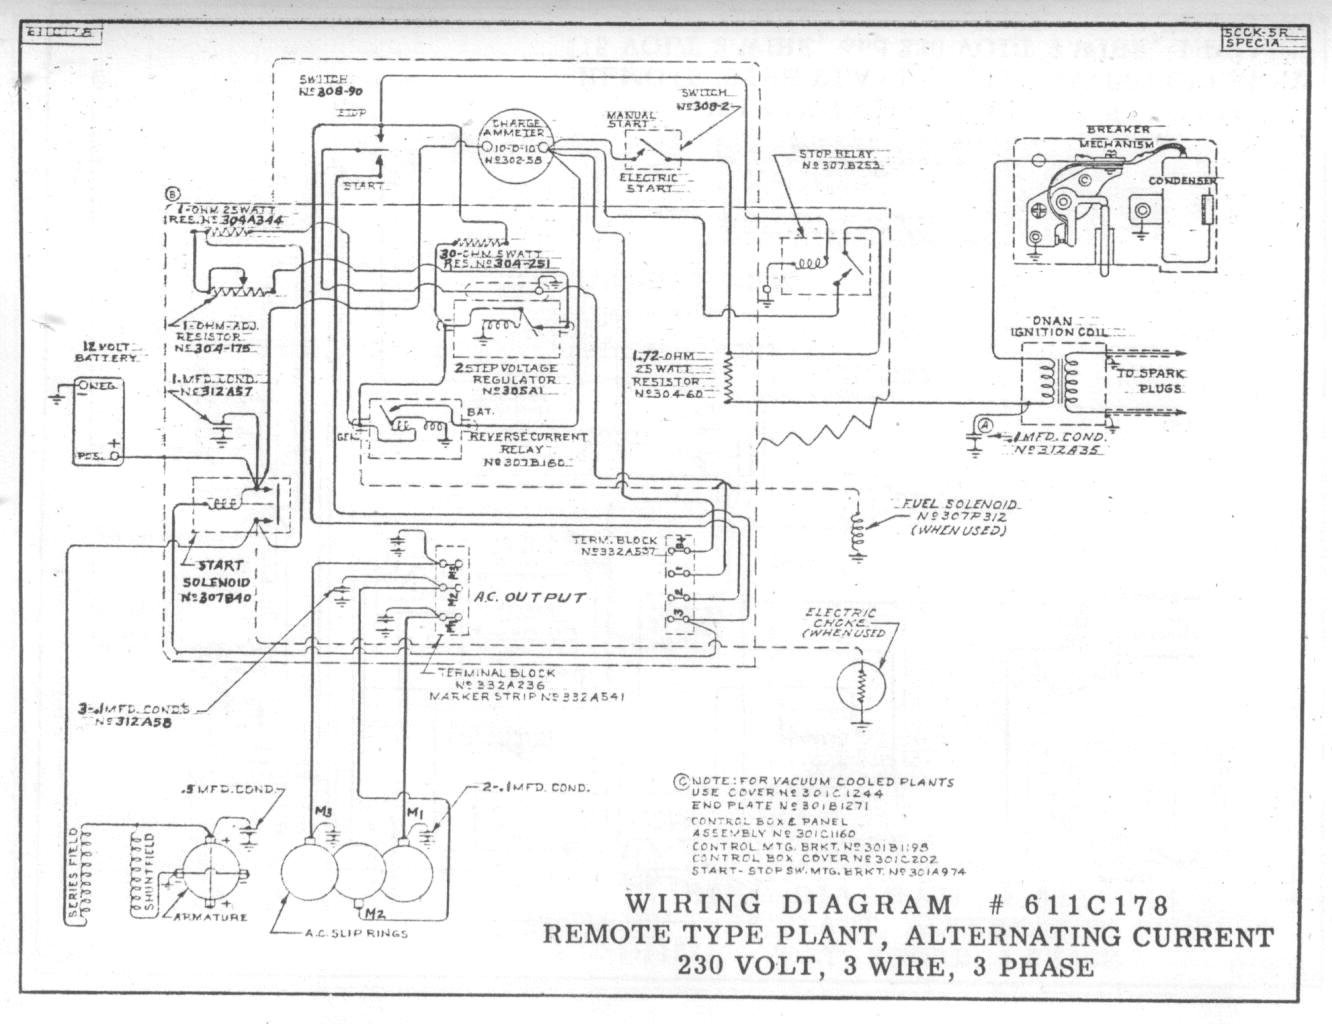 Onan_schematic onan cck wiring diagram lincweld onan cck wiring diagram \u2022 wiring 220 volt generator wiring diagram at creativeand.co